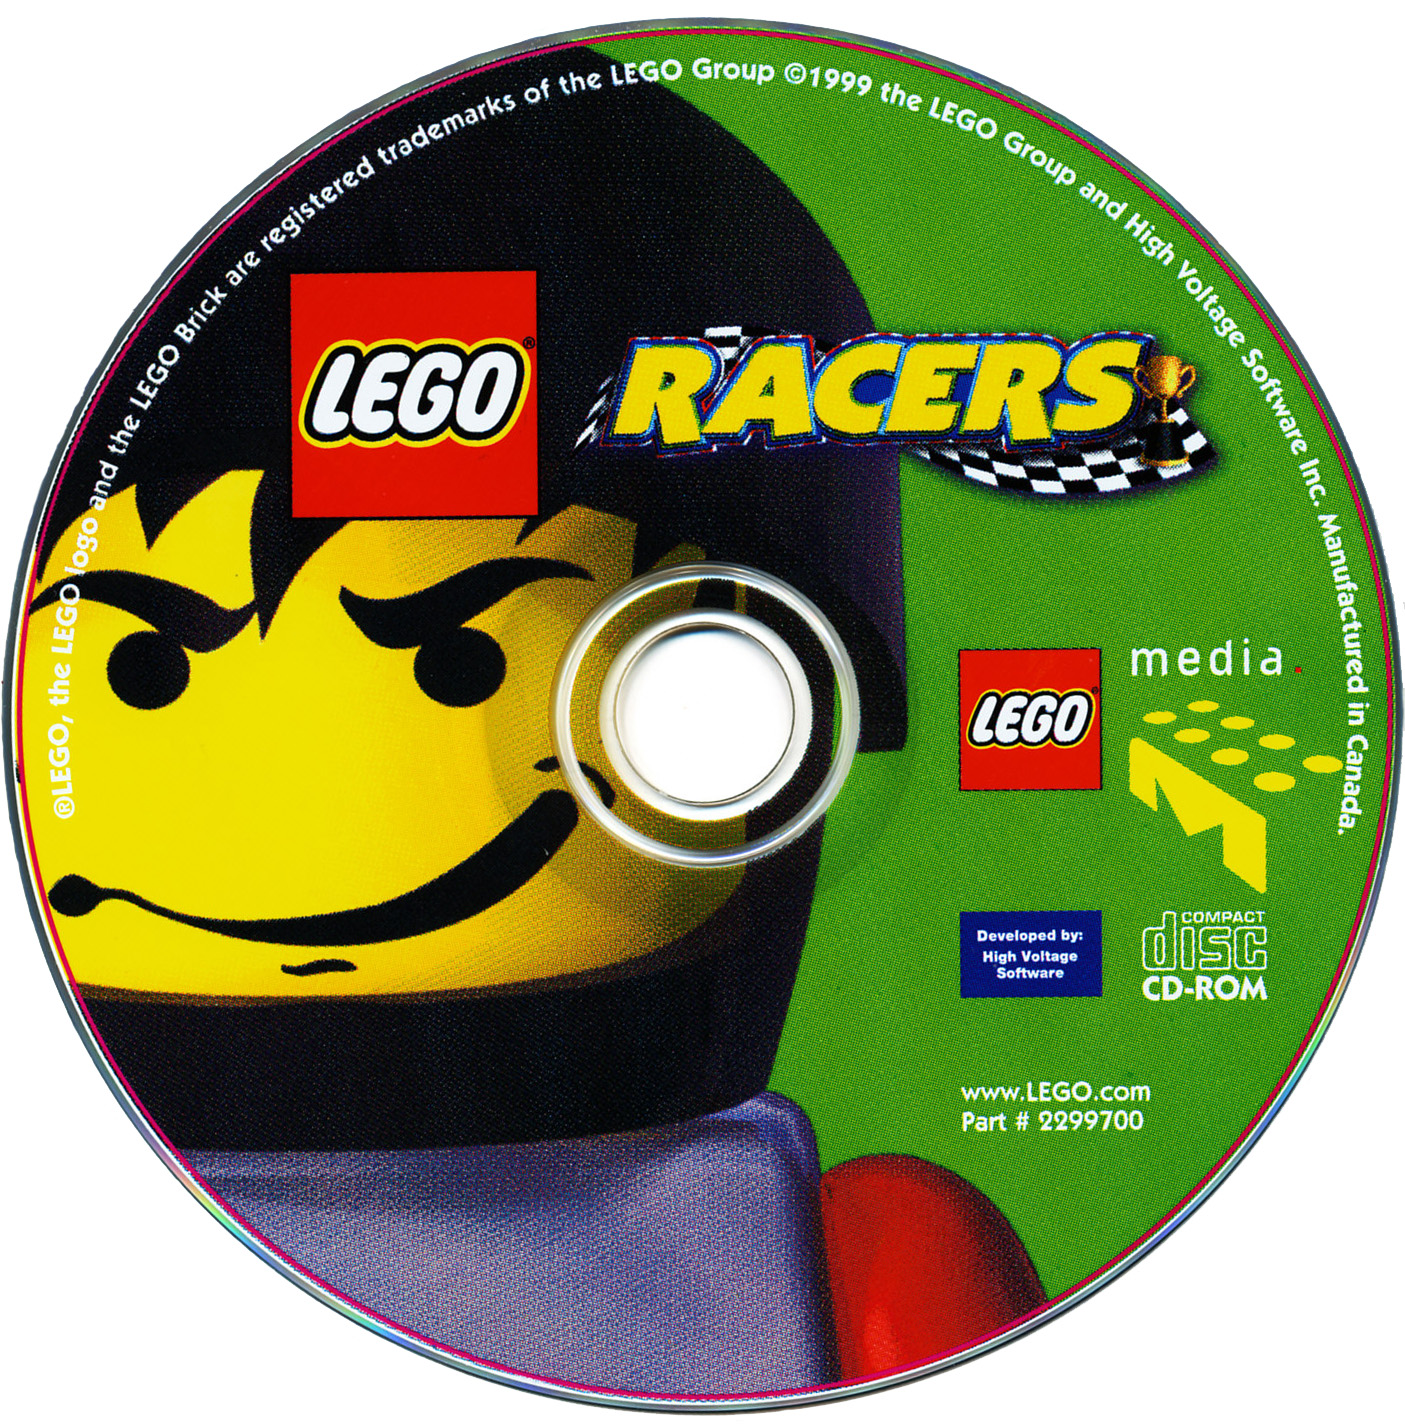 LEGO Racers 1999 release disc cover art